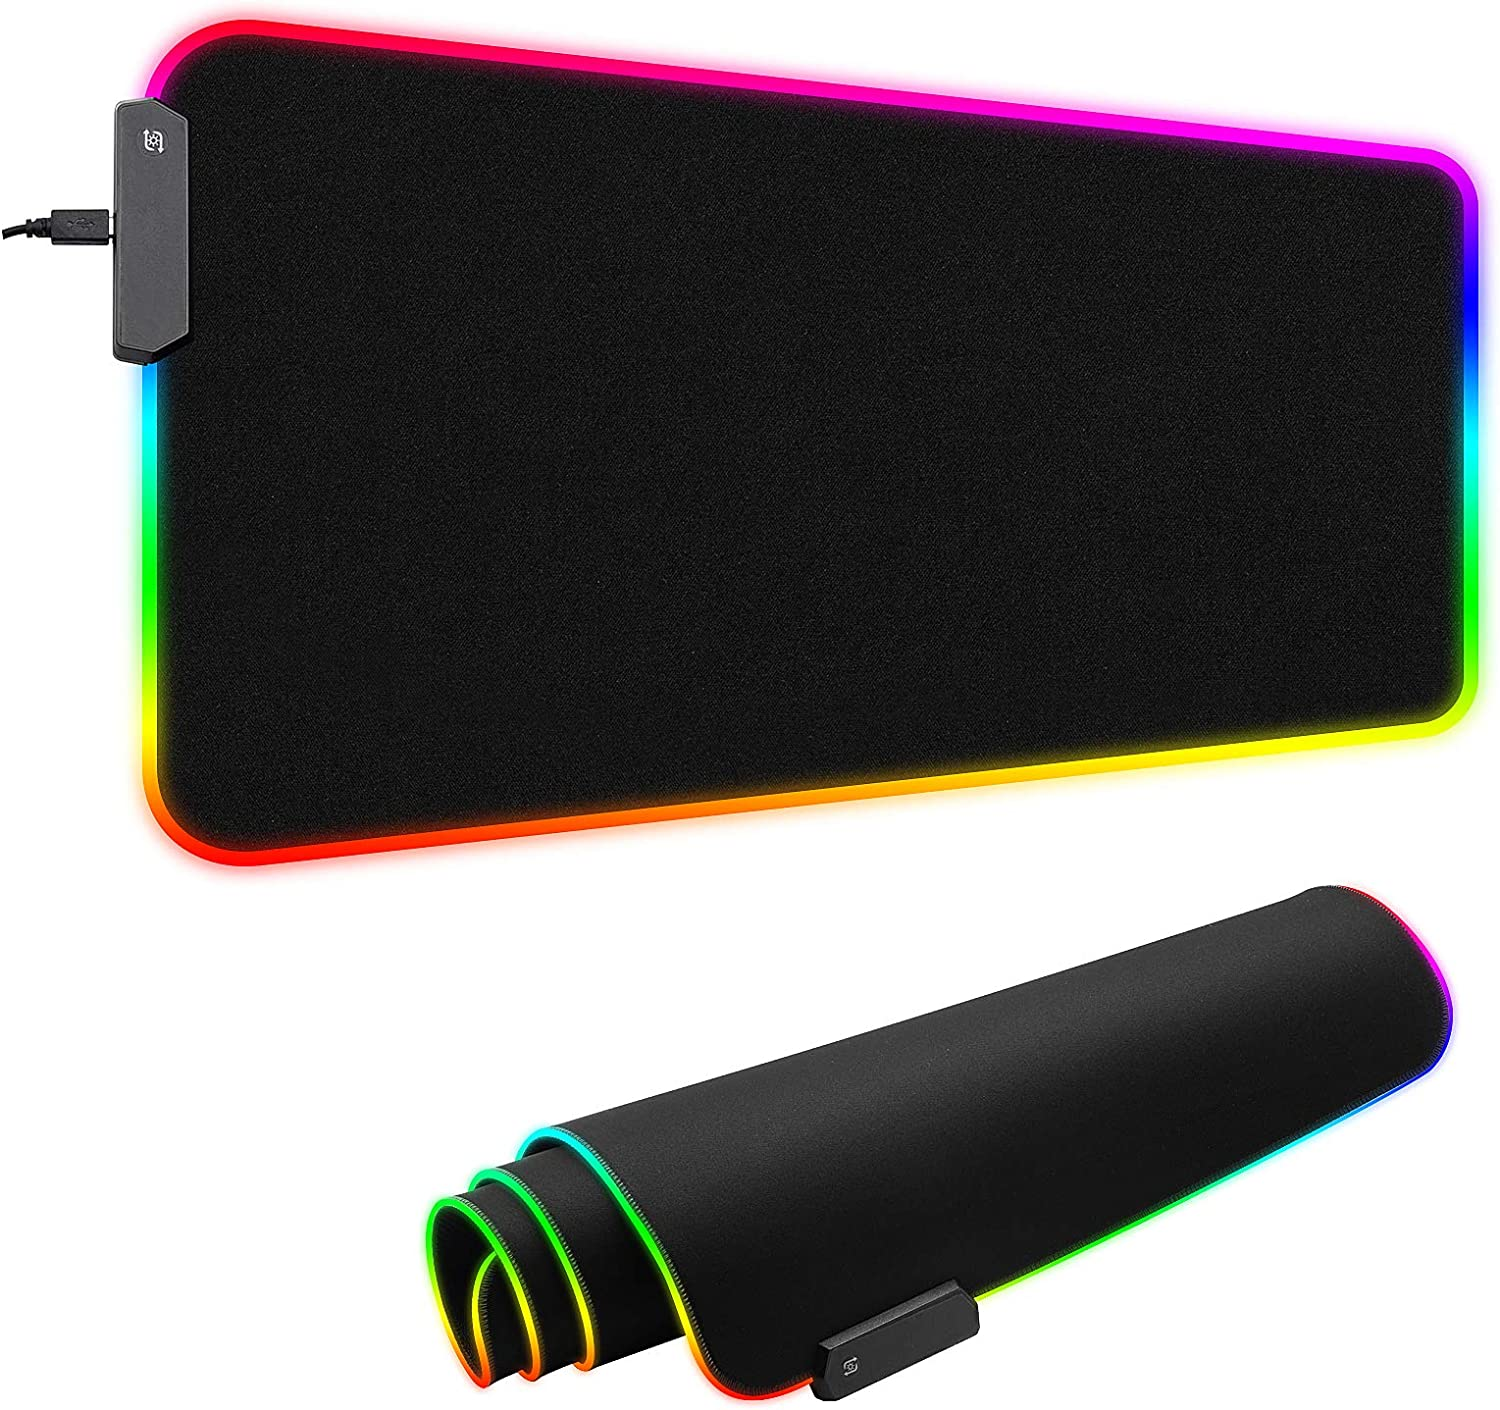 It is very popular Large RGB In a popularity Gaming Mouse Pad Mat Non-Slip Extended Soft Bas Rubber